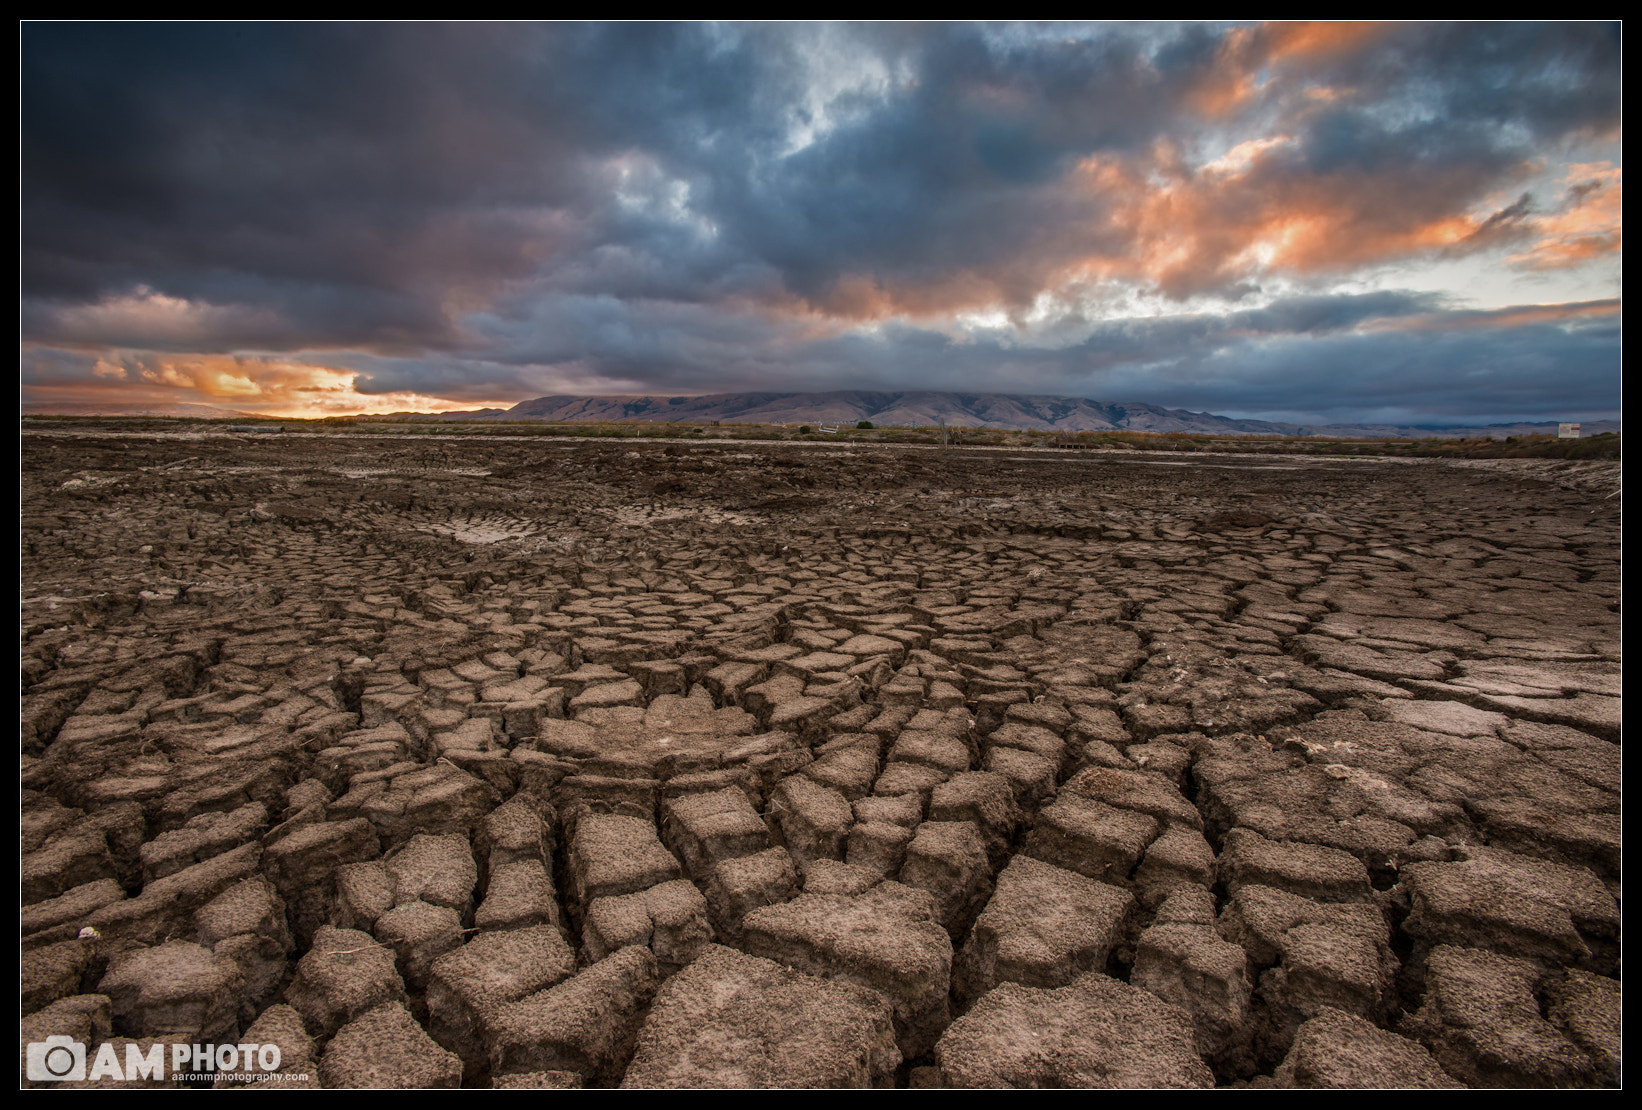 Photograph Thirsty by Aaron M on 500px